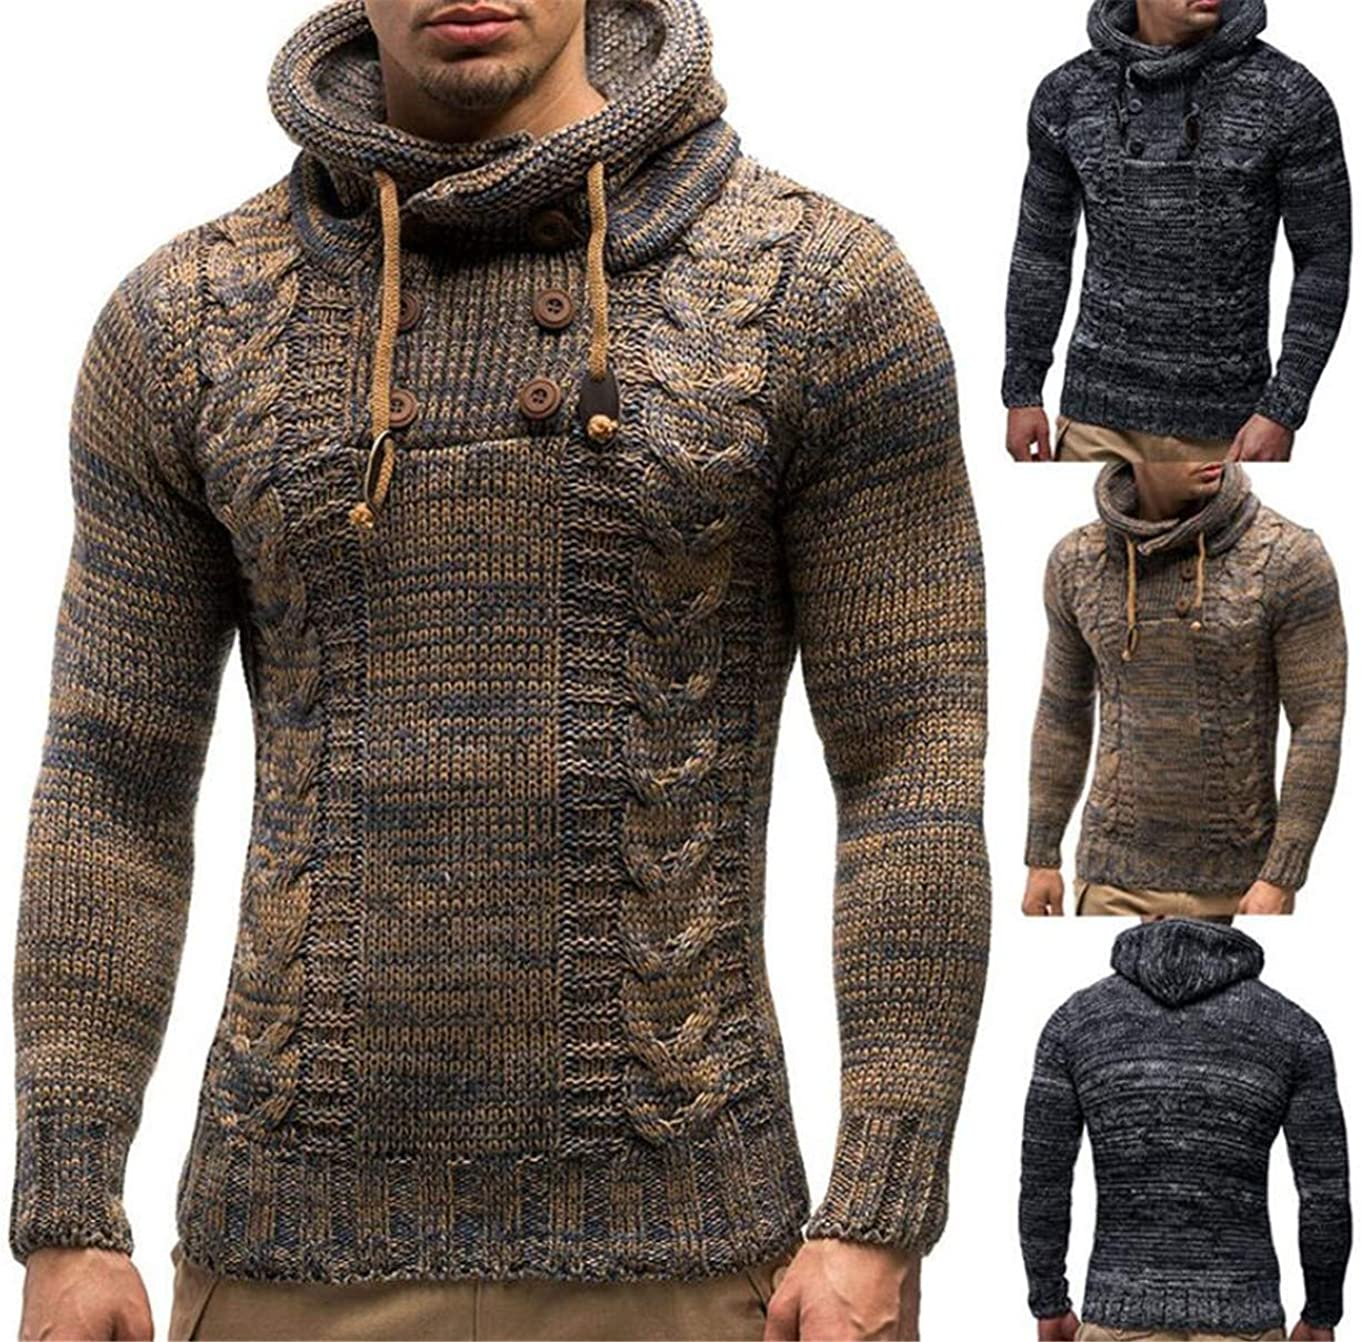 Bstge Mens Fashion Turtle Neck Knit Pullover Sweater